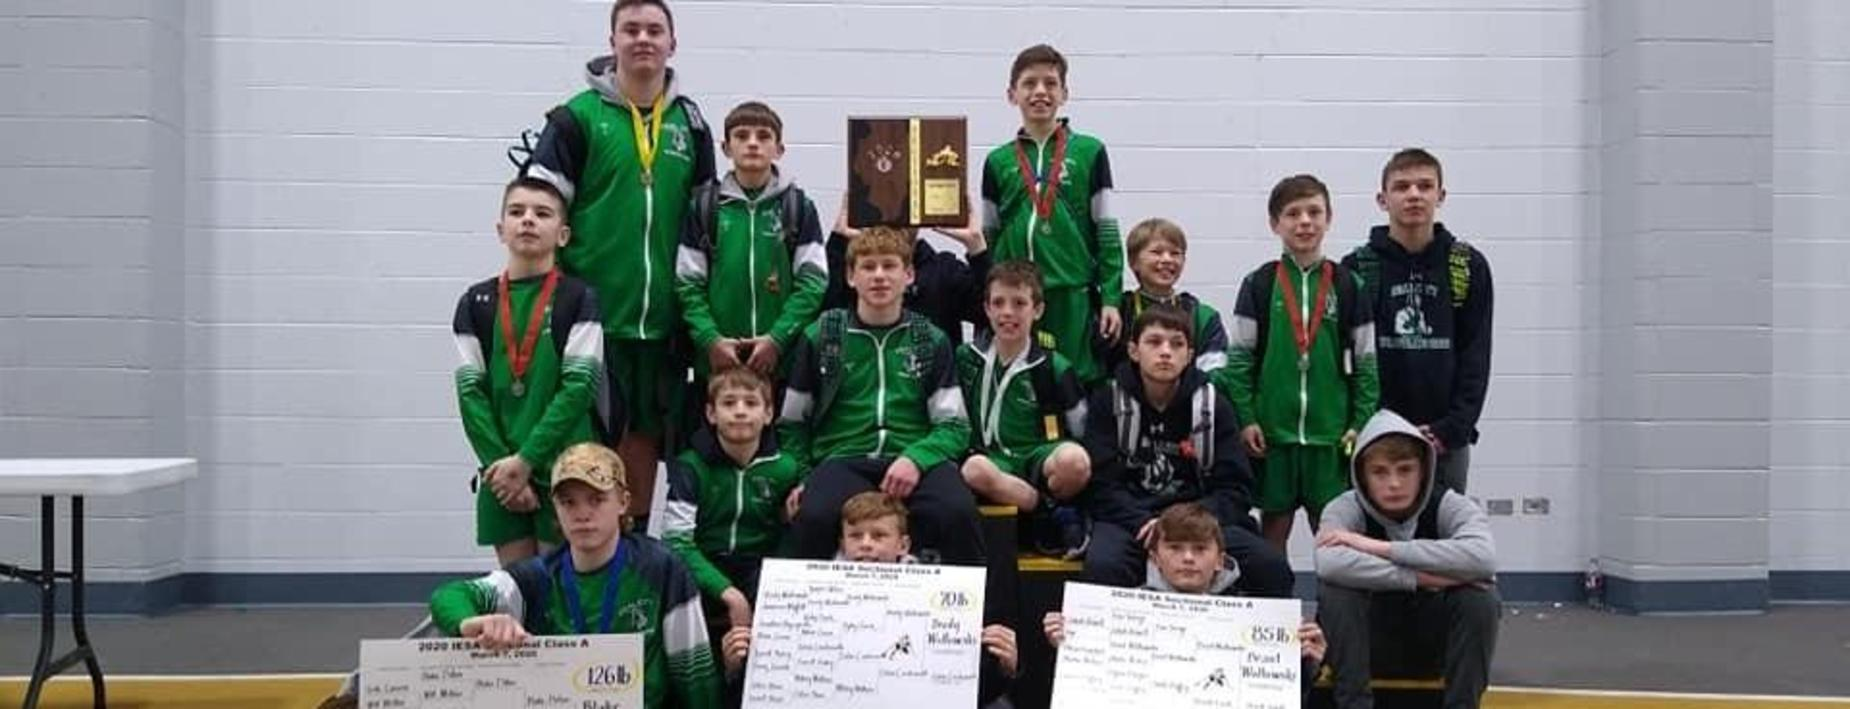 Heading to state wrestling - CCMS